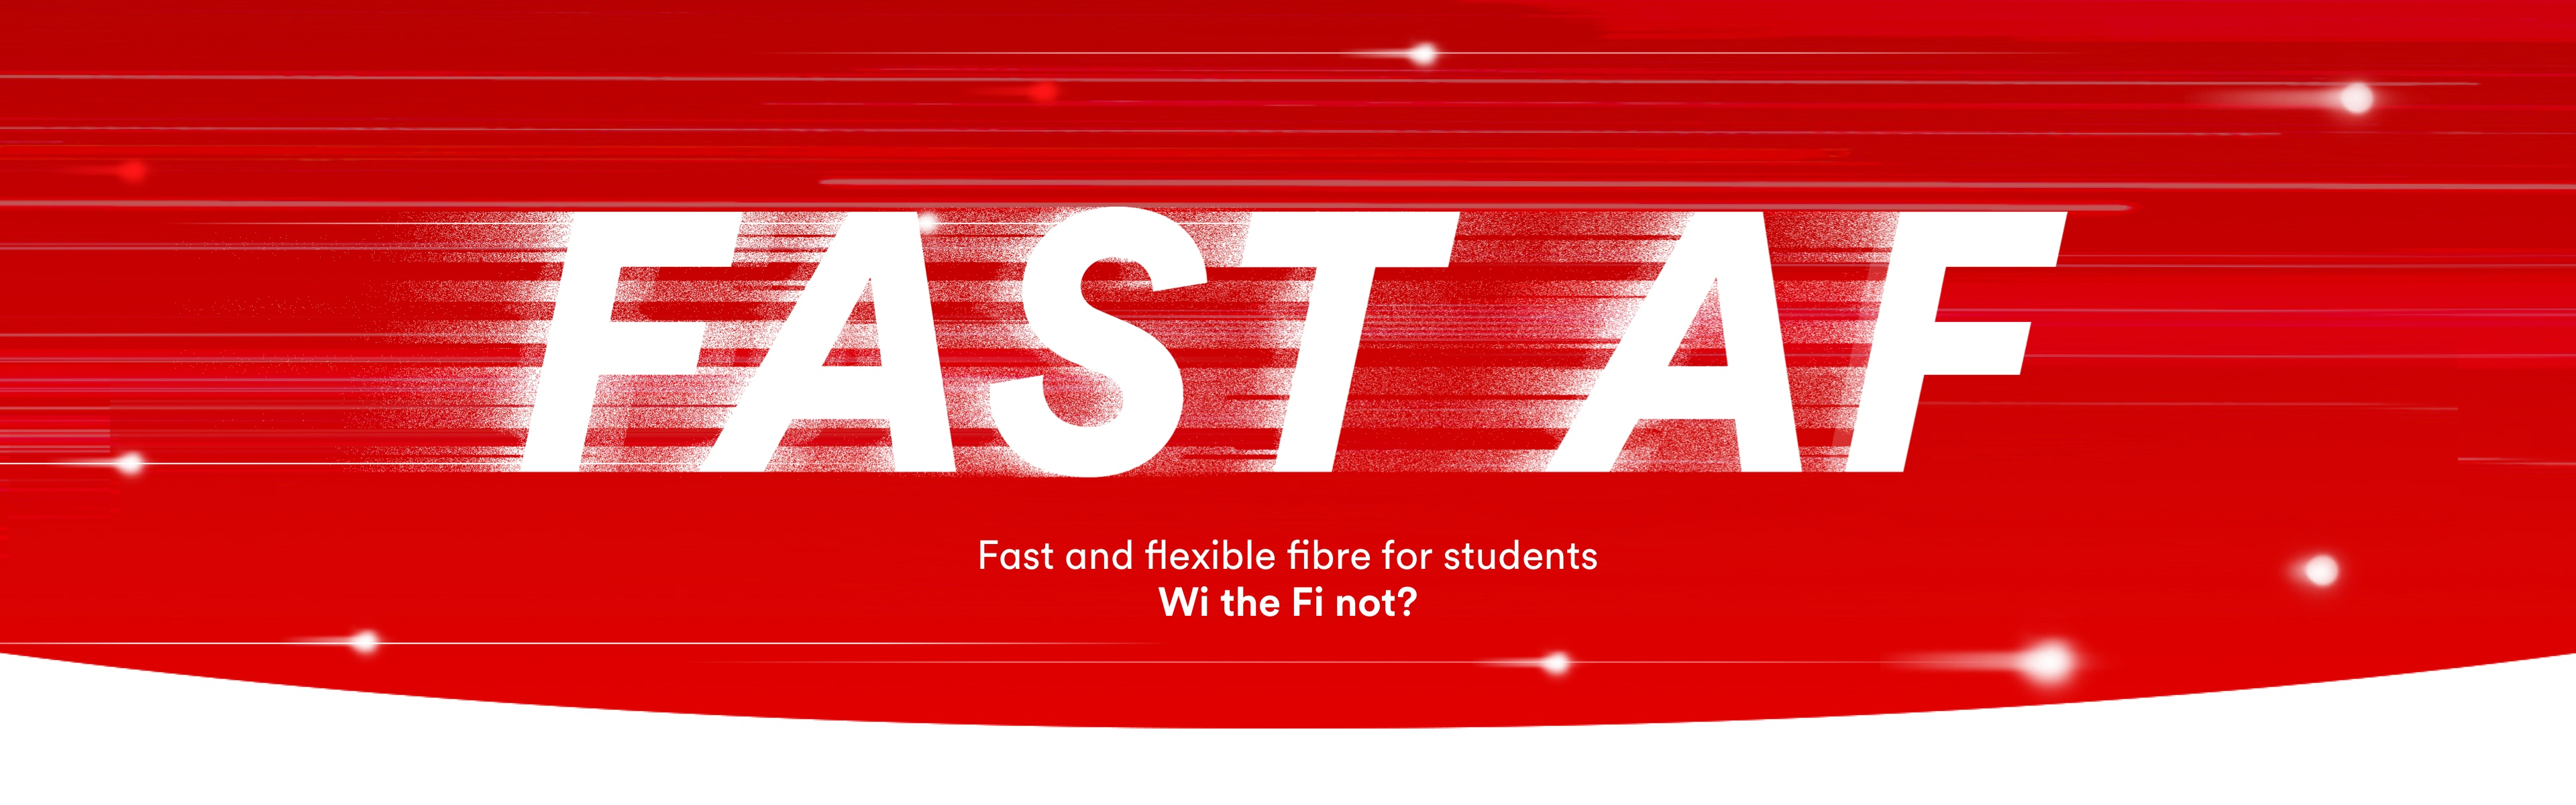 Student exclusive broadband offers